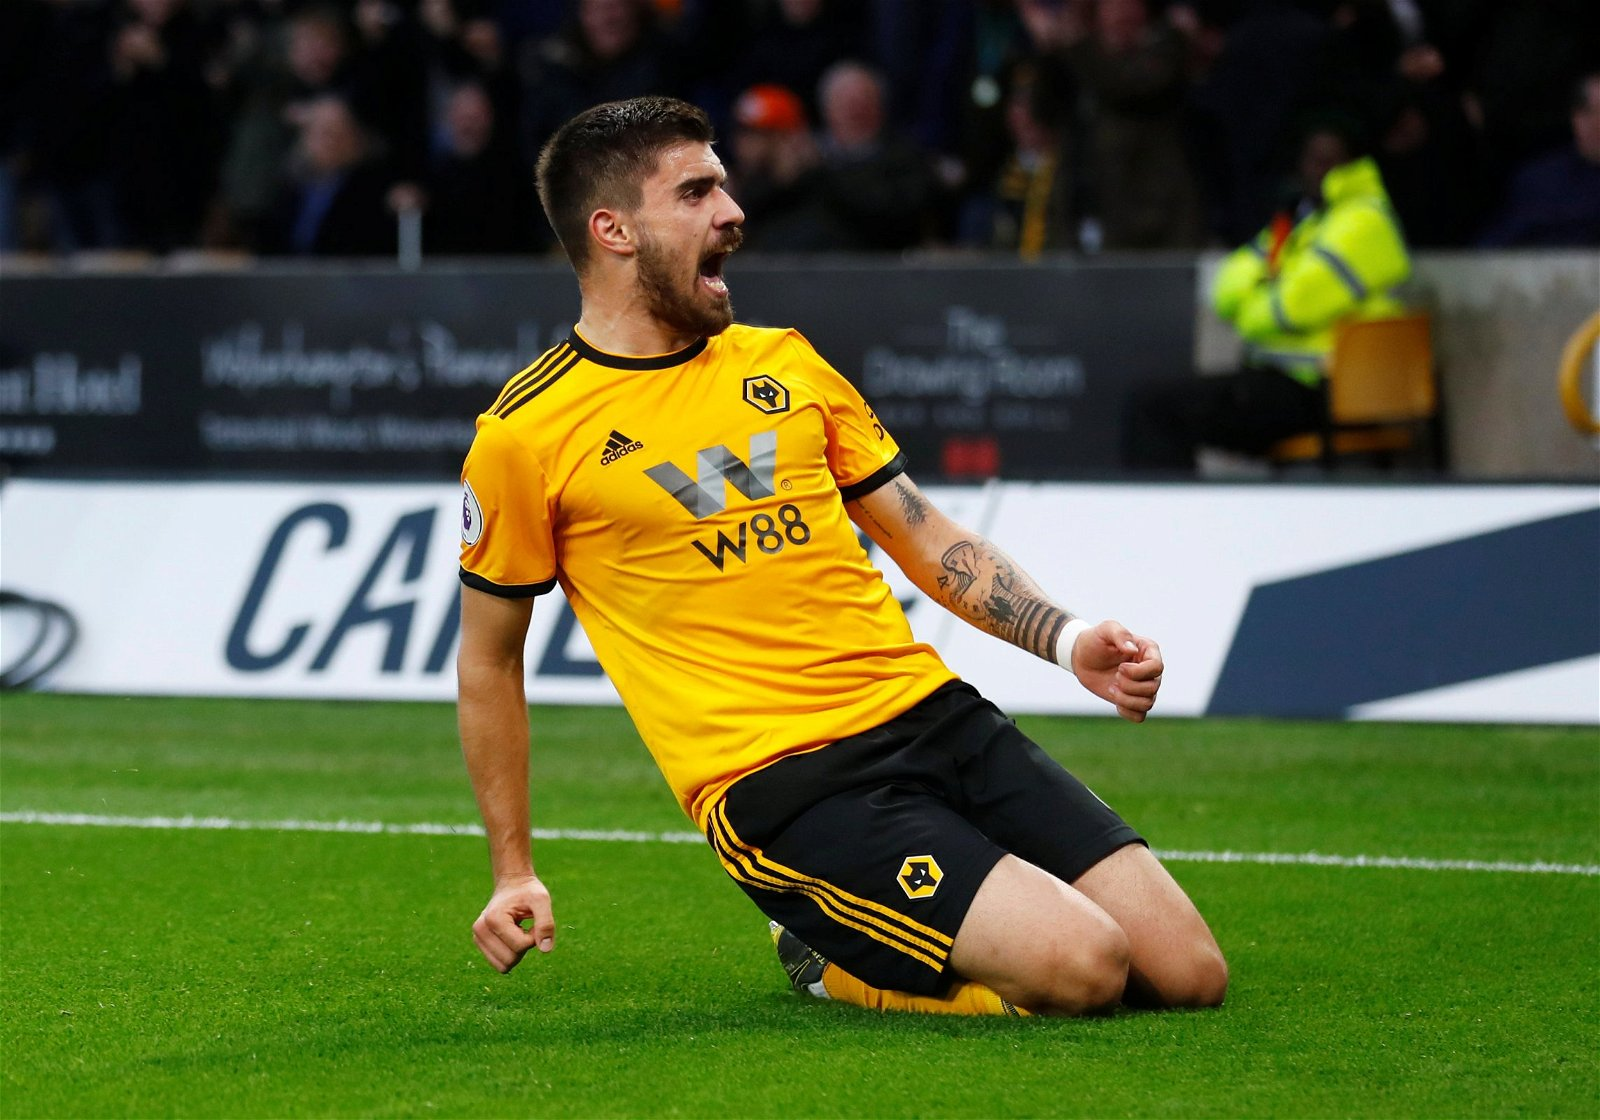 Ruben Neves - Stunning transformation at Wolves has happened far quicker than anyone imagined - opinion